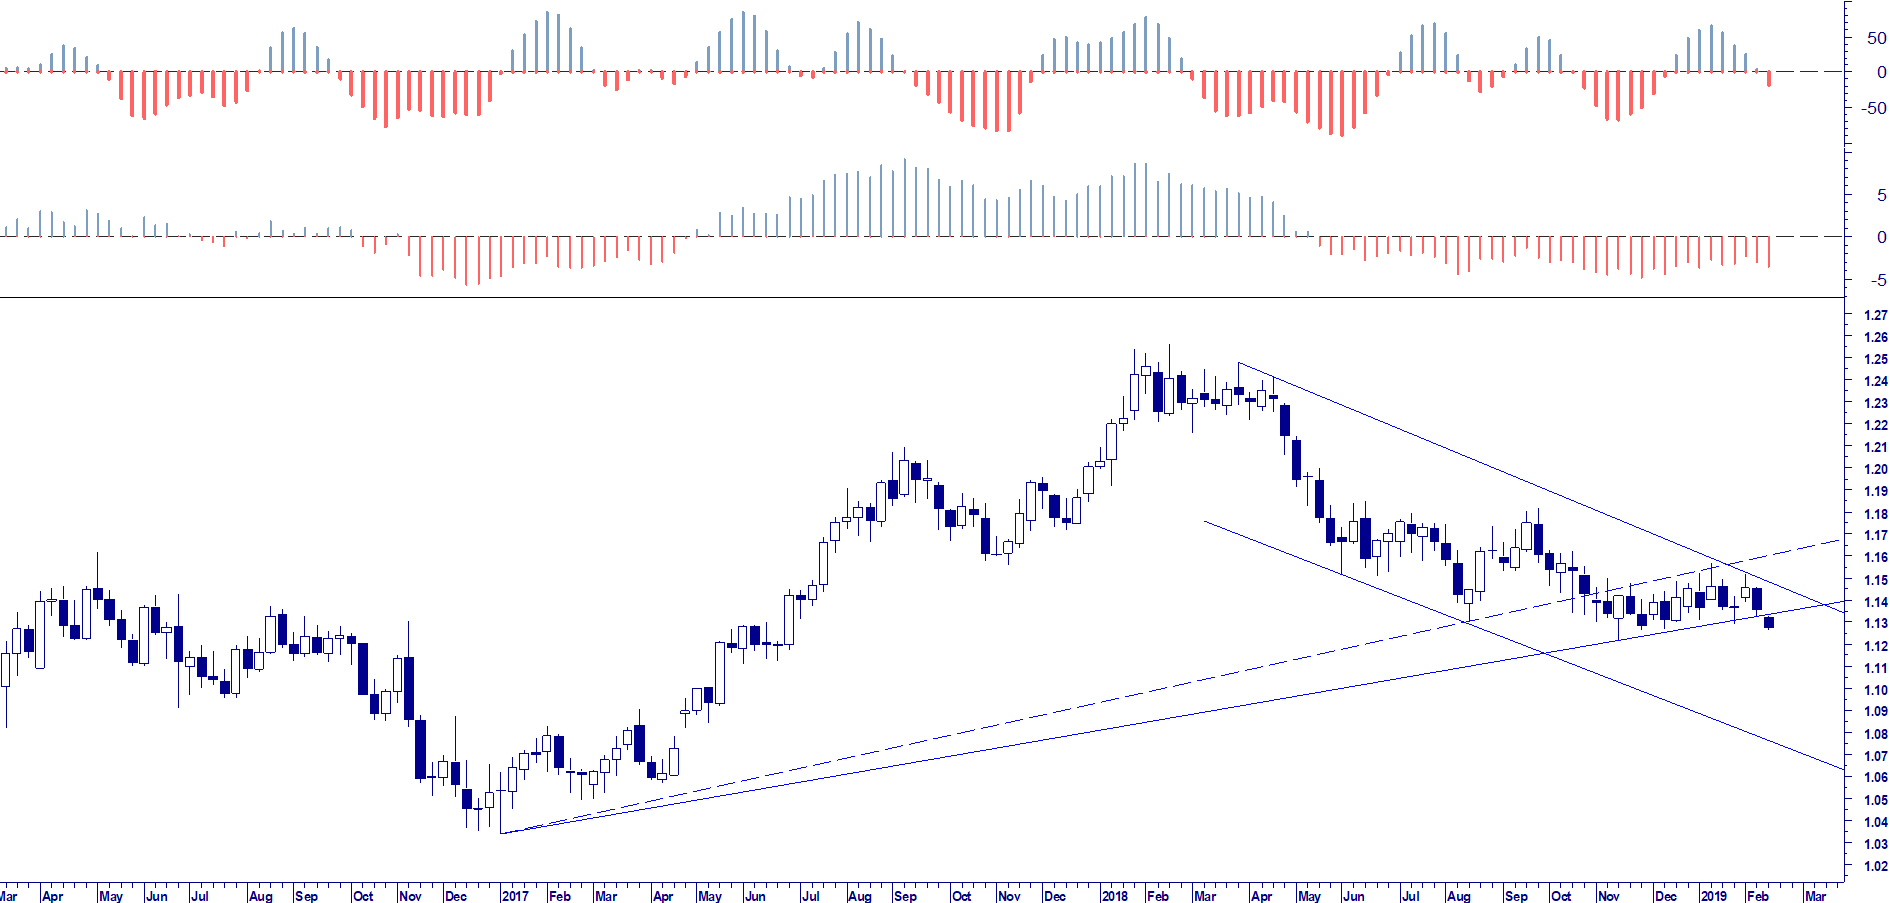 WB RISK MANAGEMENT: EUR USD WEEKLY